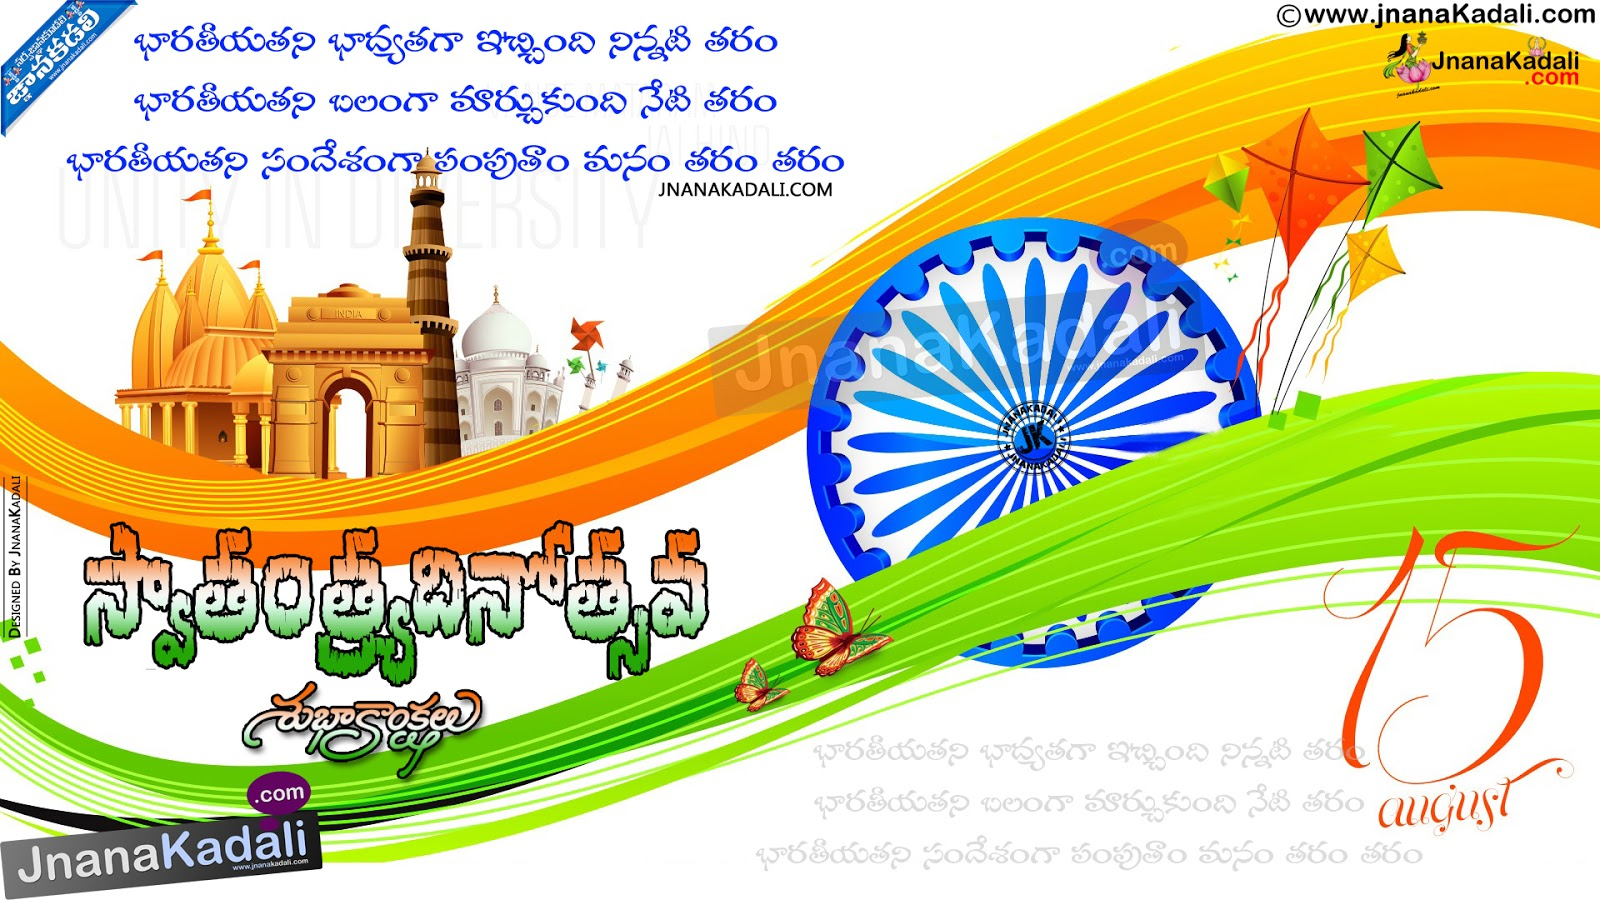 essay writing on independence day of india in telugu {{best}} independence day 2017 speech for students -71th india independence day (15 august) speech in hindi, english, tamil, telugu, marathi for teachers.